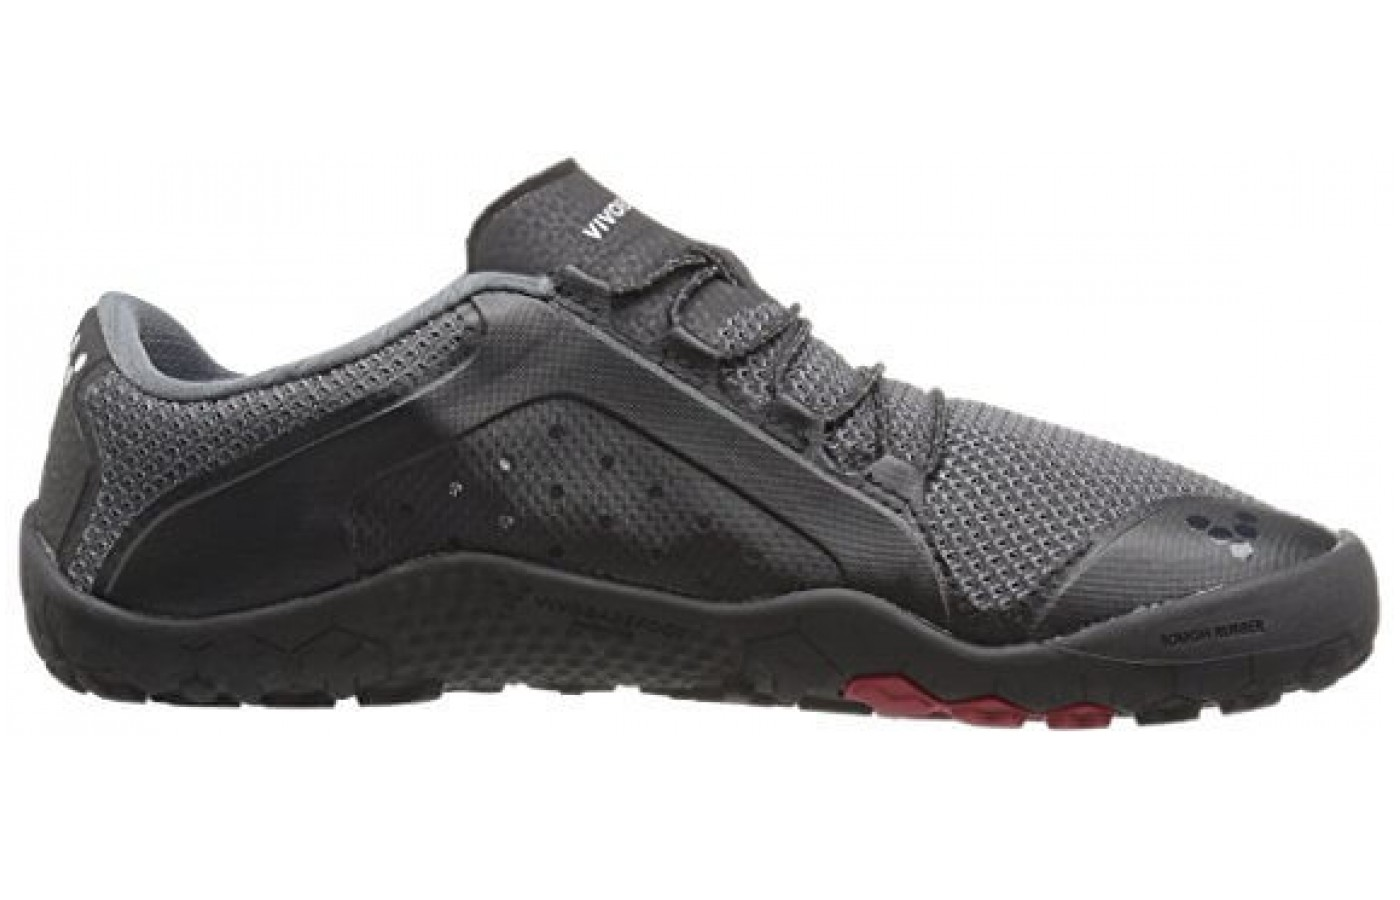 The Vivobarefoot Primus Trail FG has a mountain lace with toggle